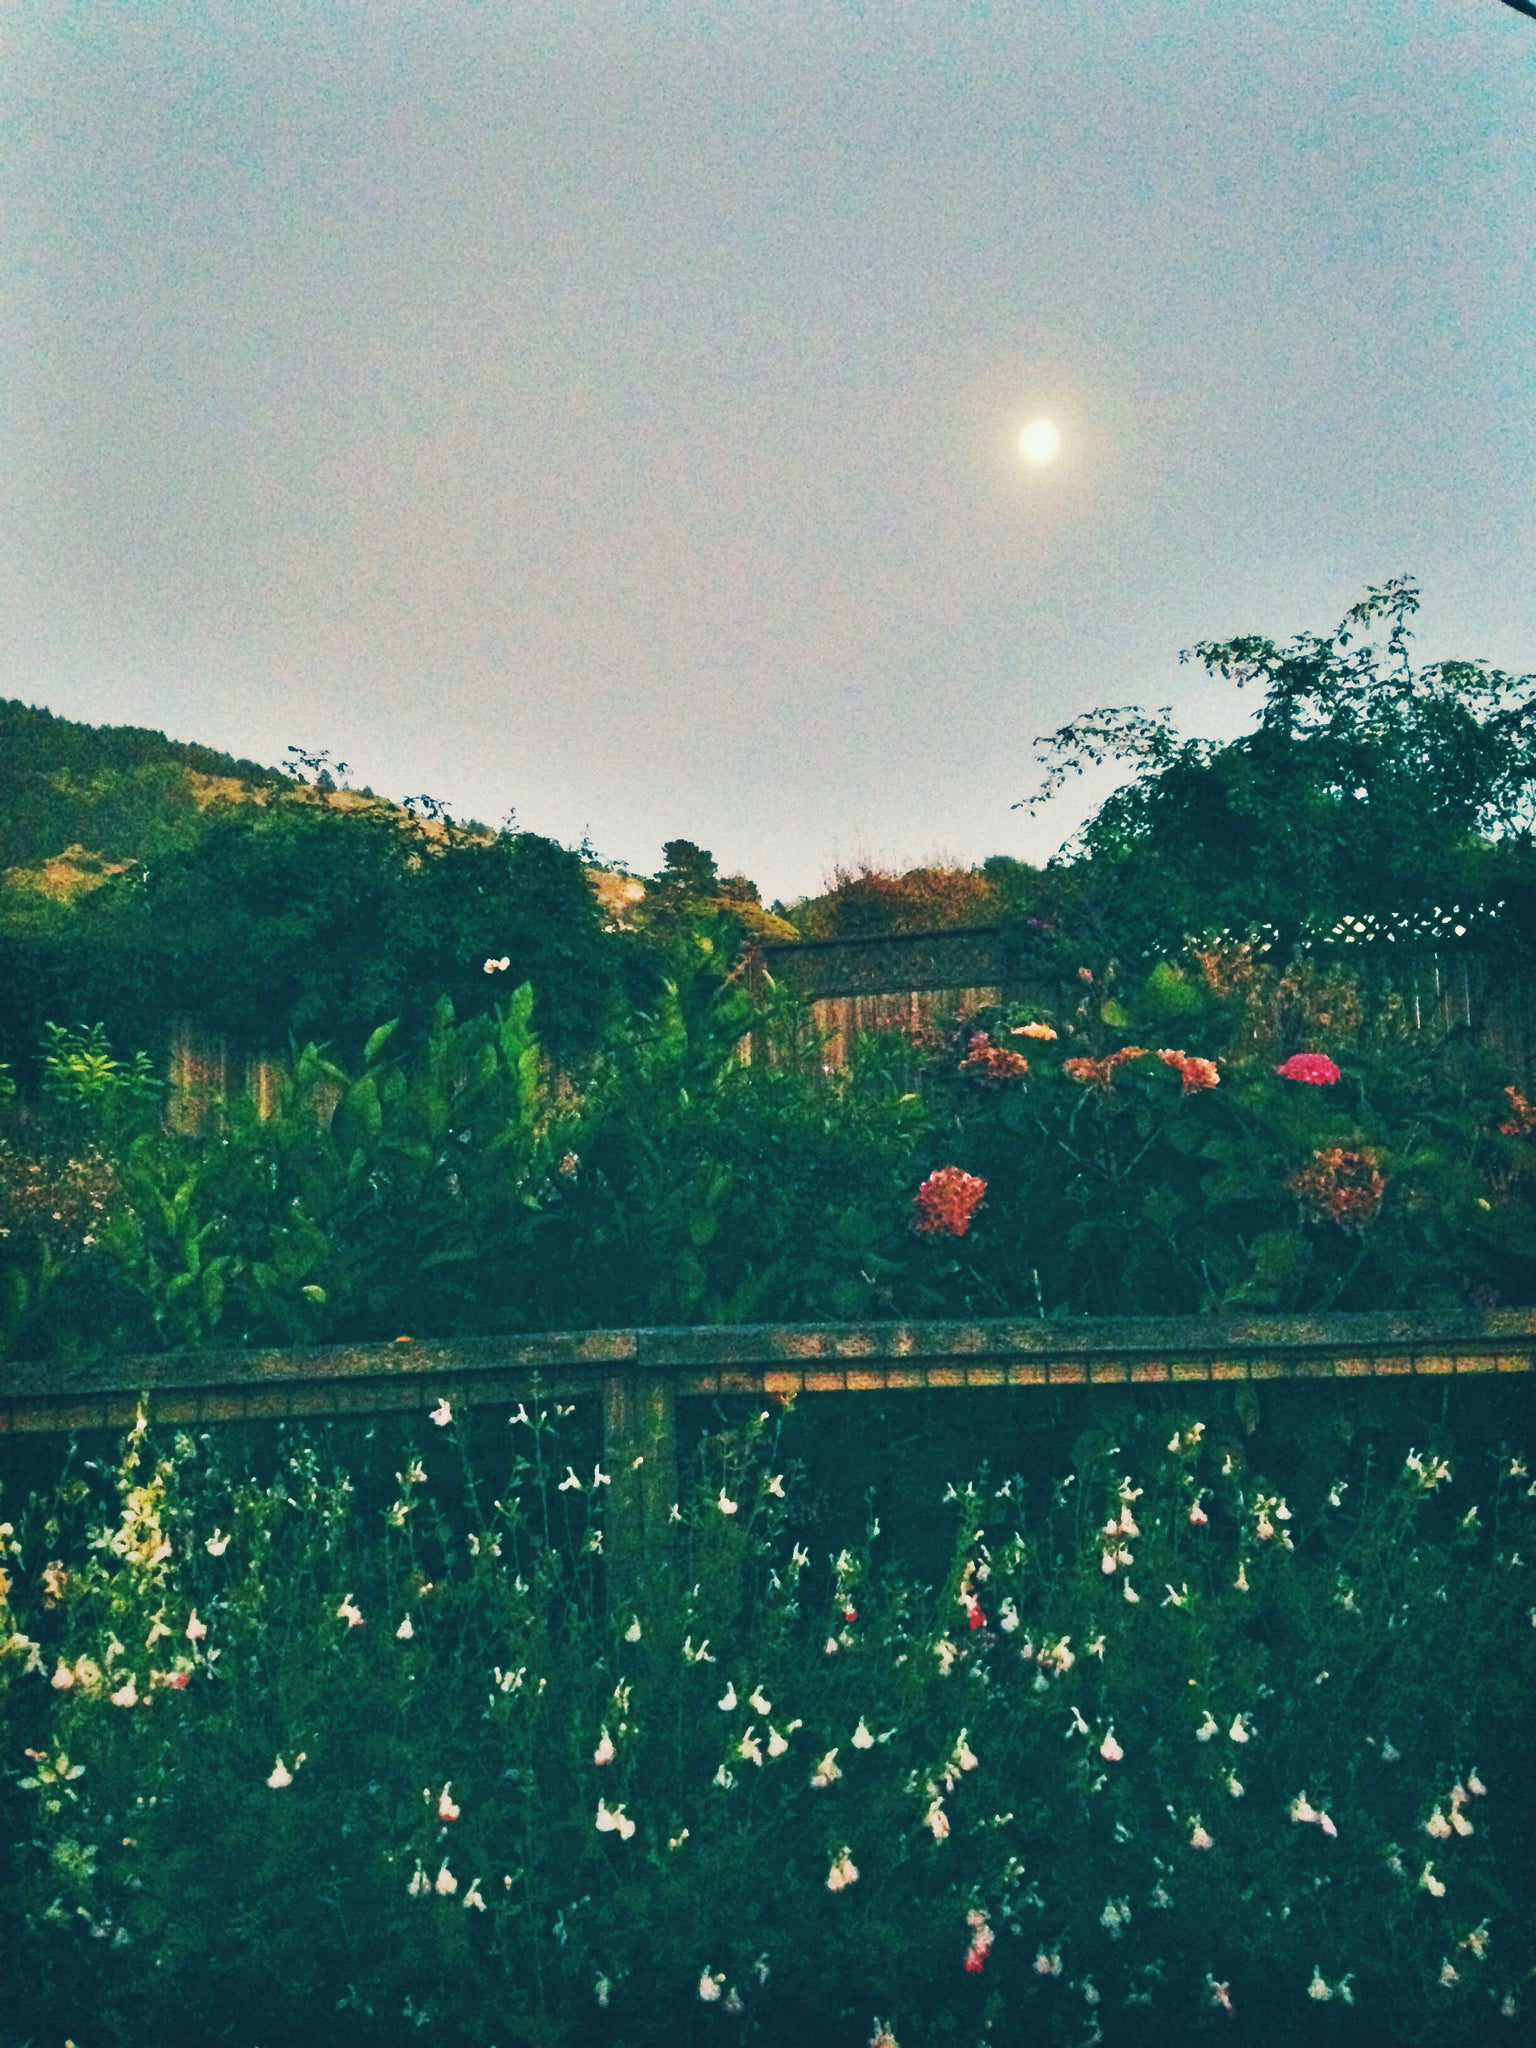 Dinner in the garden under the moon light at Parkside Cafe